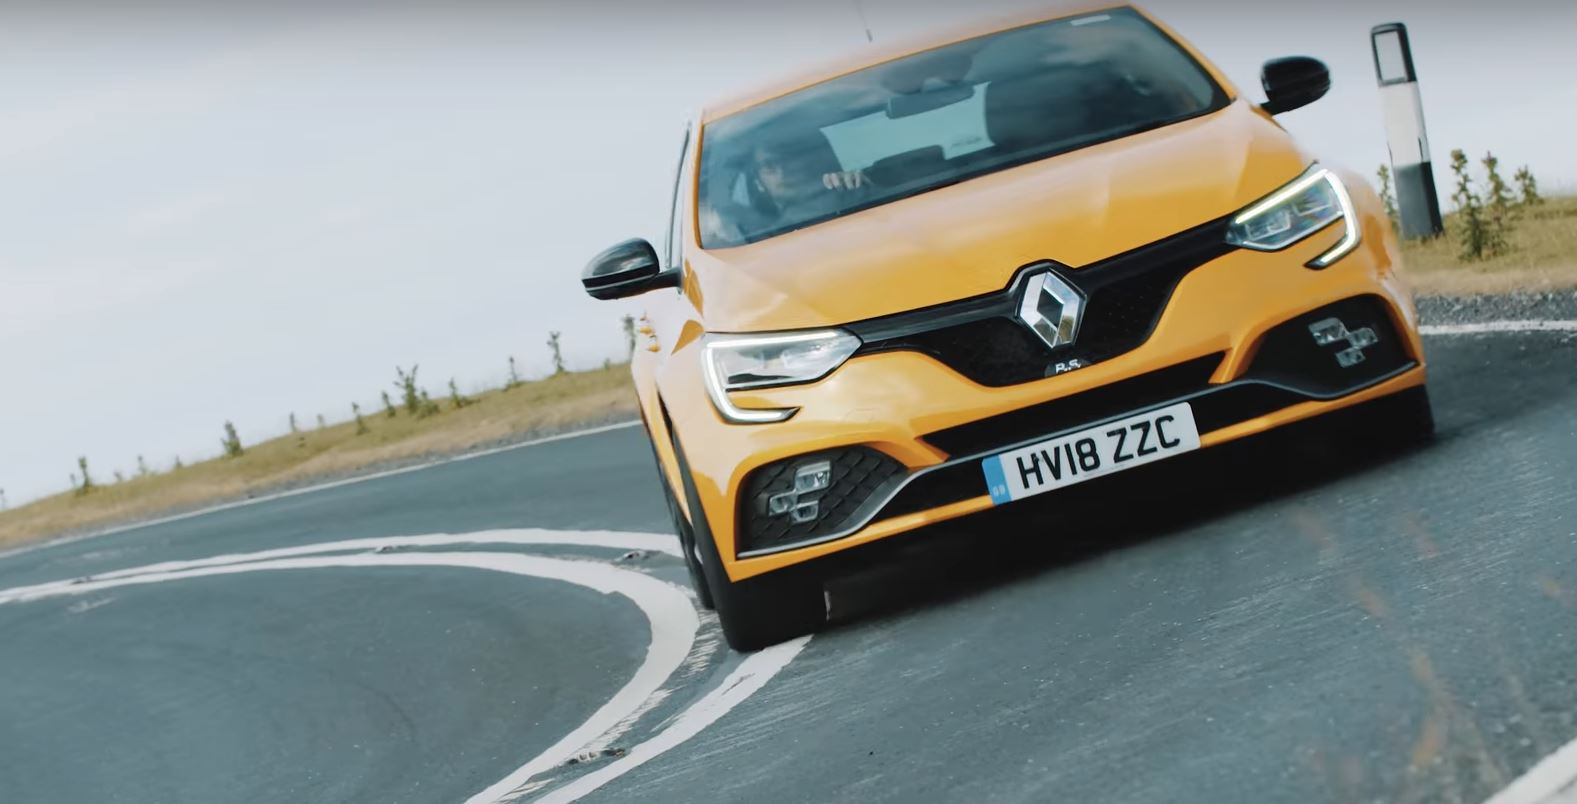 Renault Megane Rs 280 Cup Is A Contradiction Says Uk